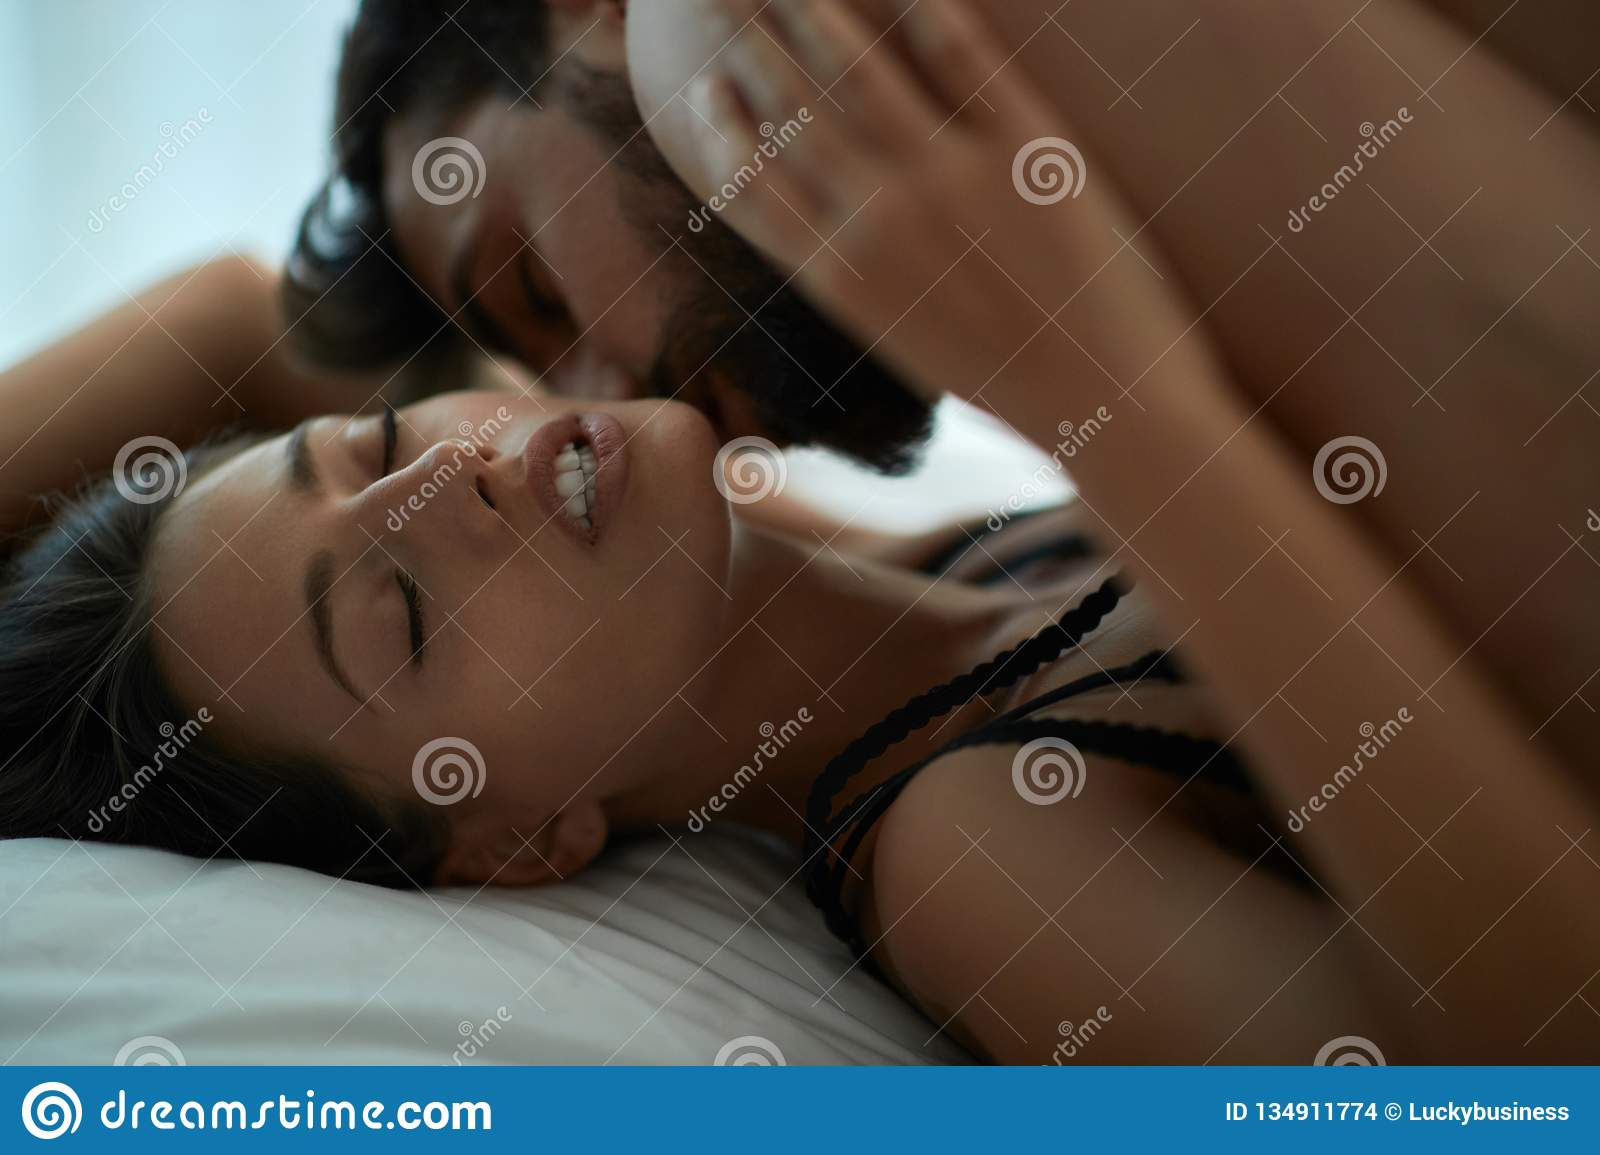 Passionate sex for women